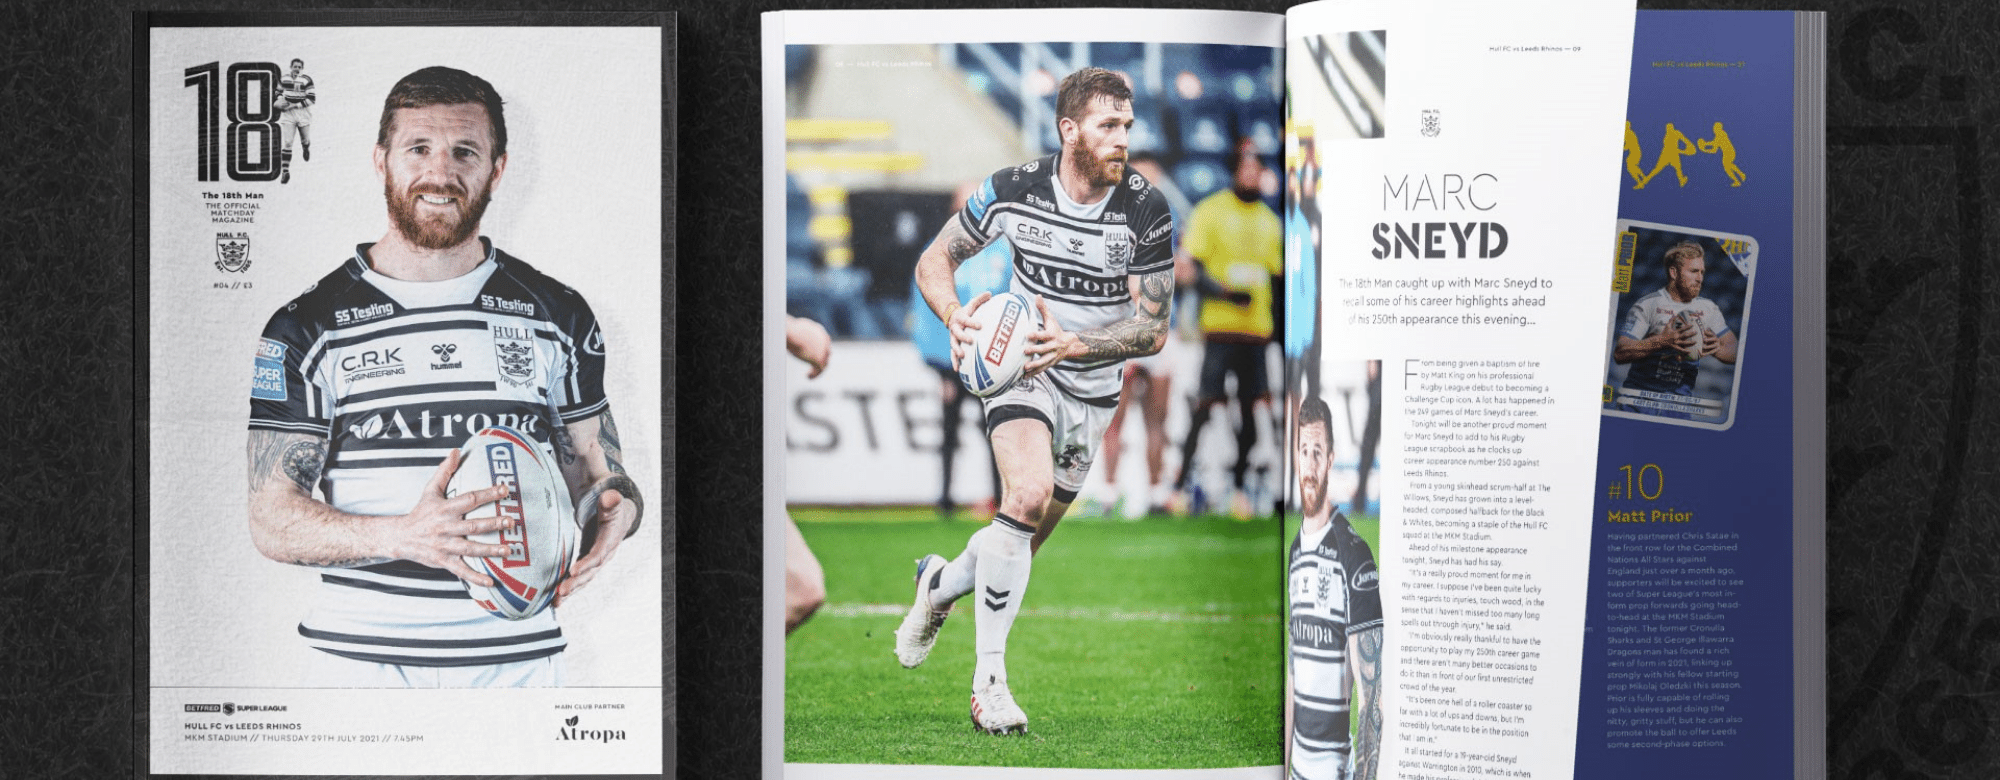 Match Day Programme Available Tonight